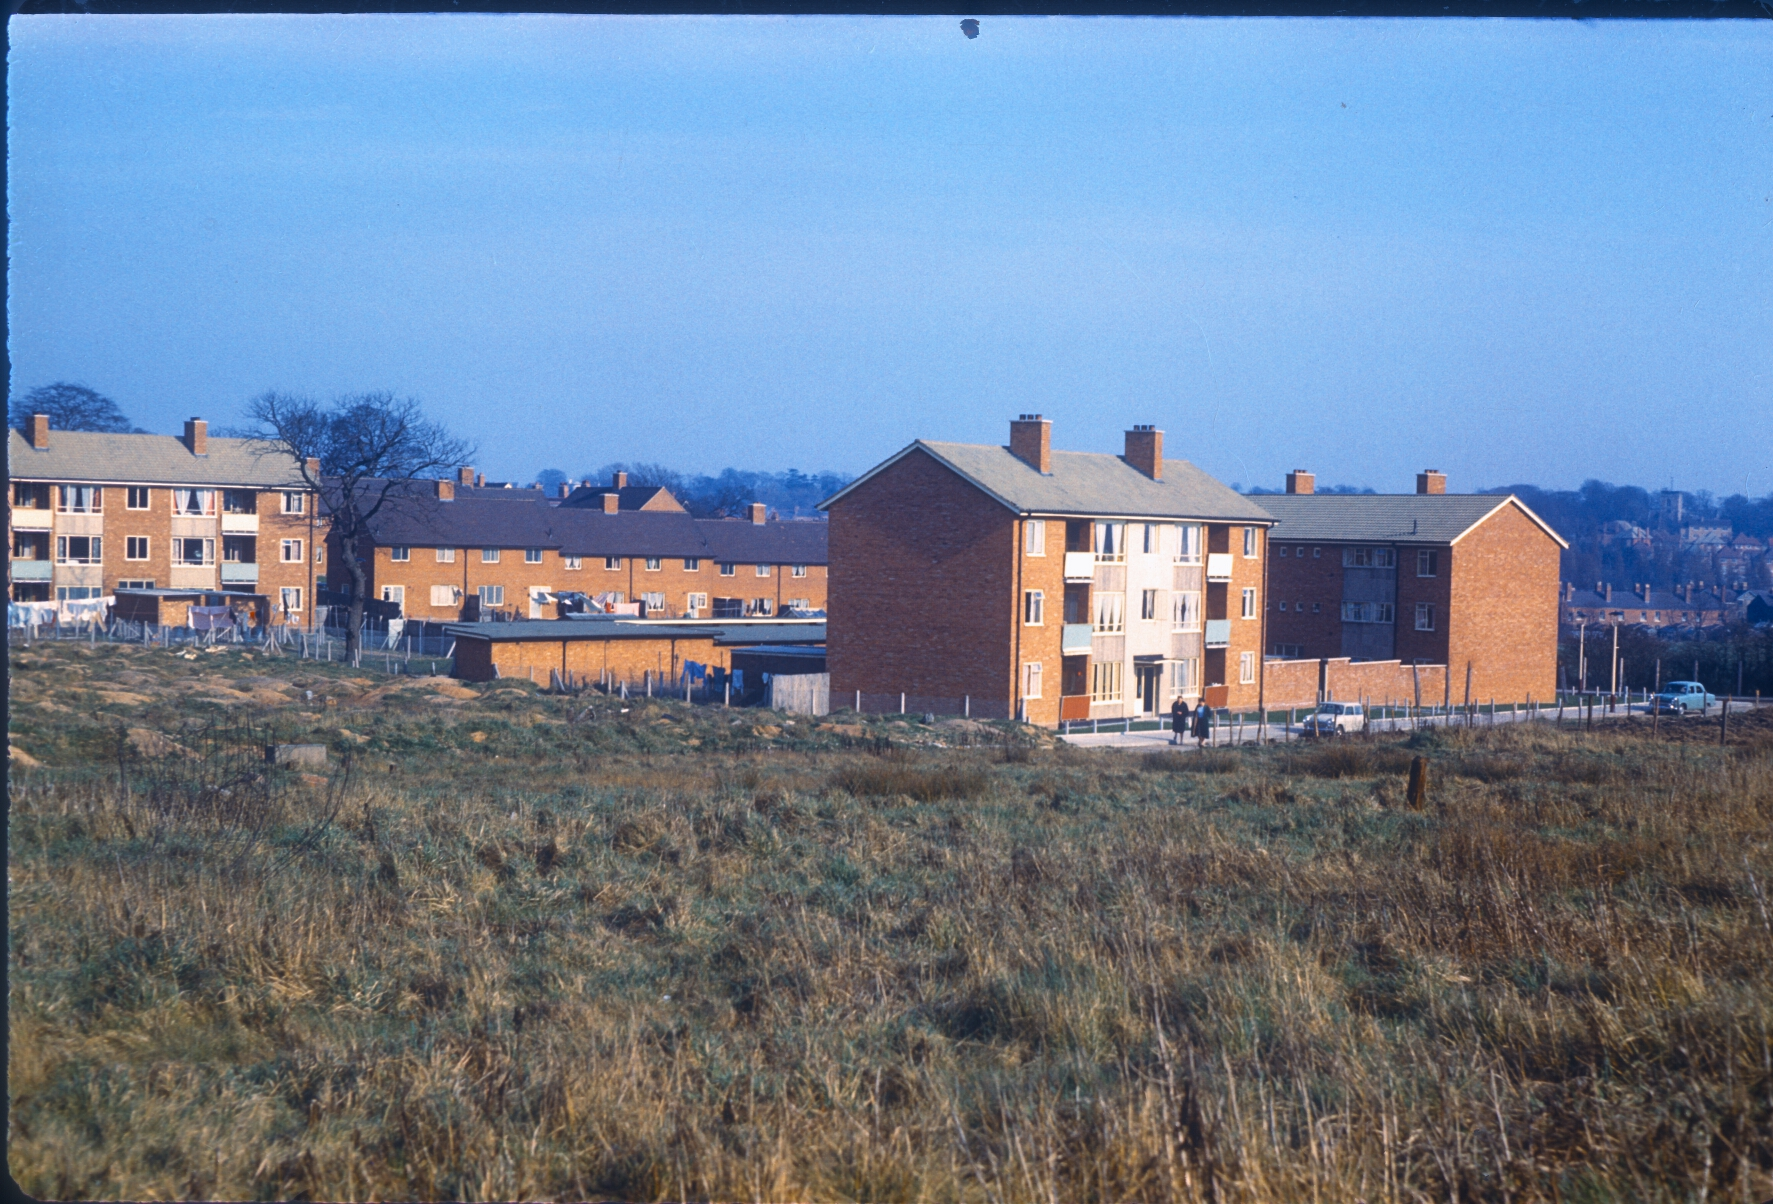 Harborne Metchley Lane. Peartree Cottages. 3rd December 1966